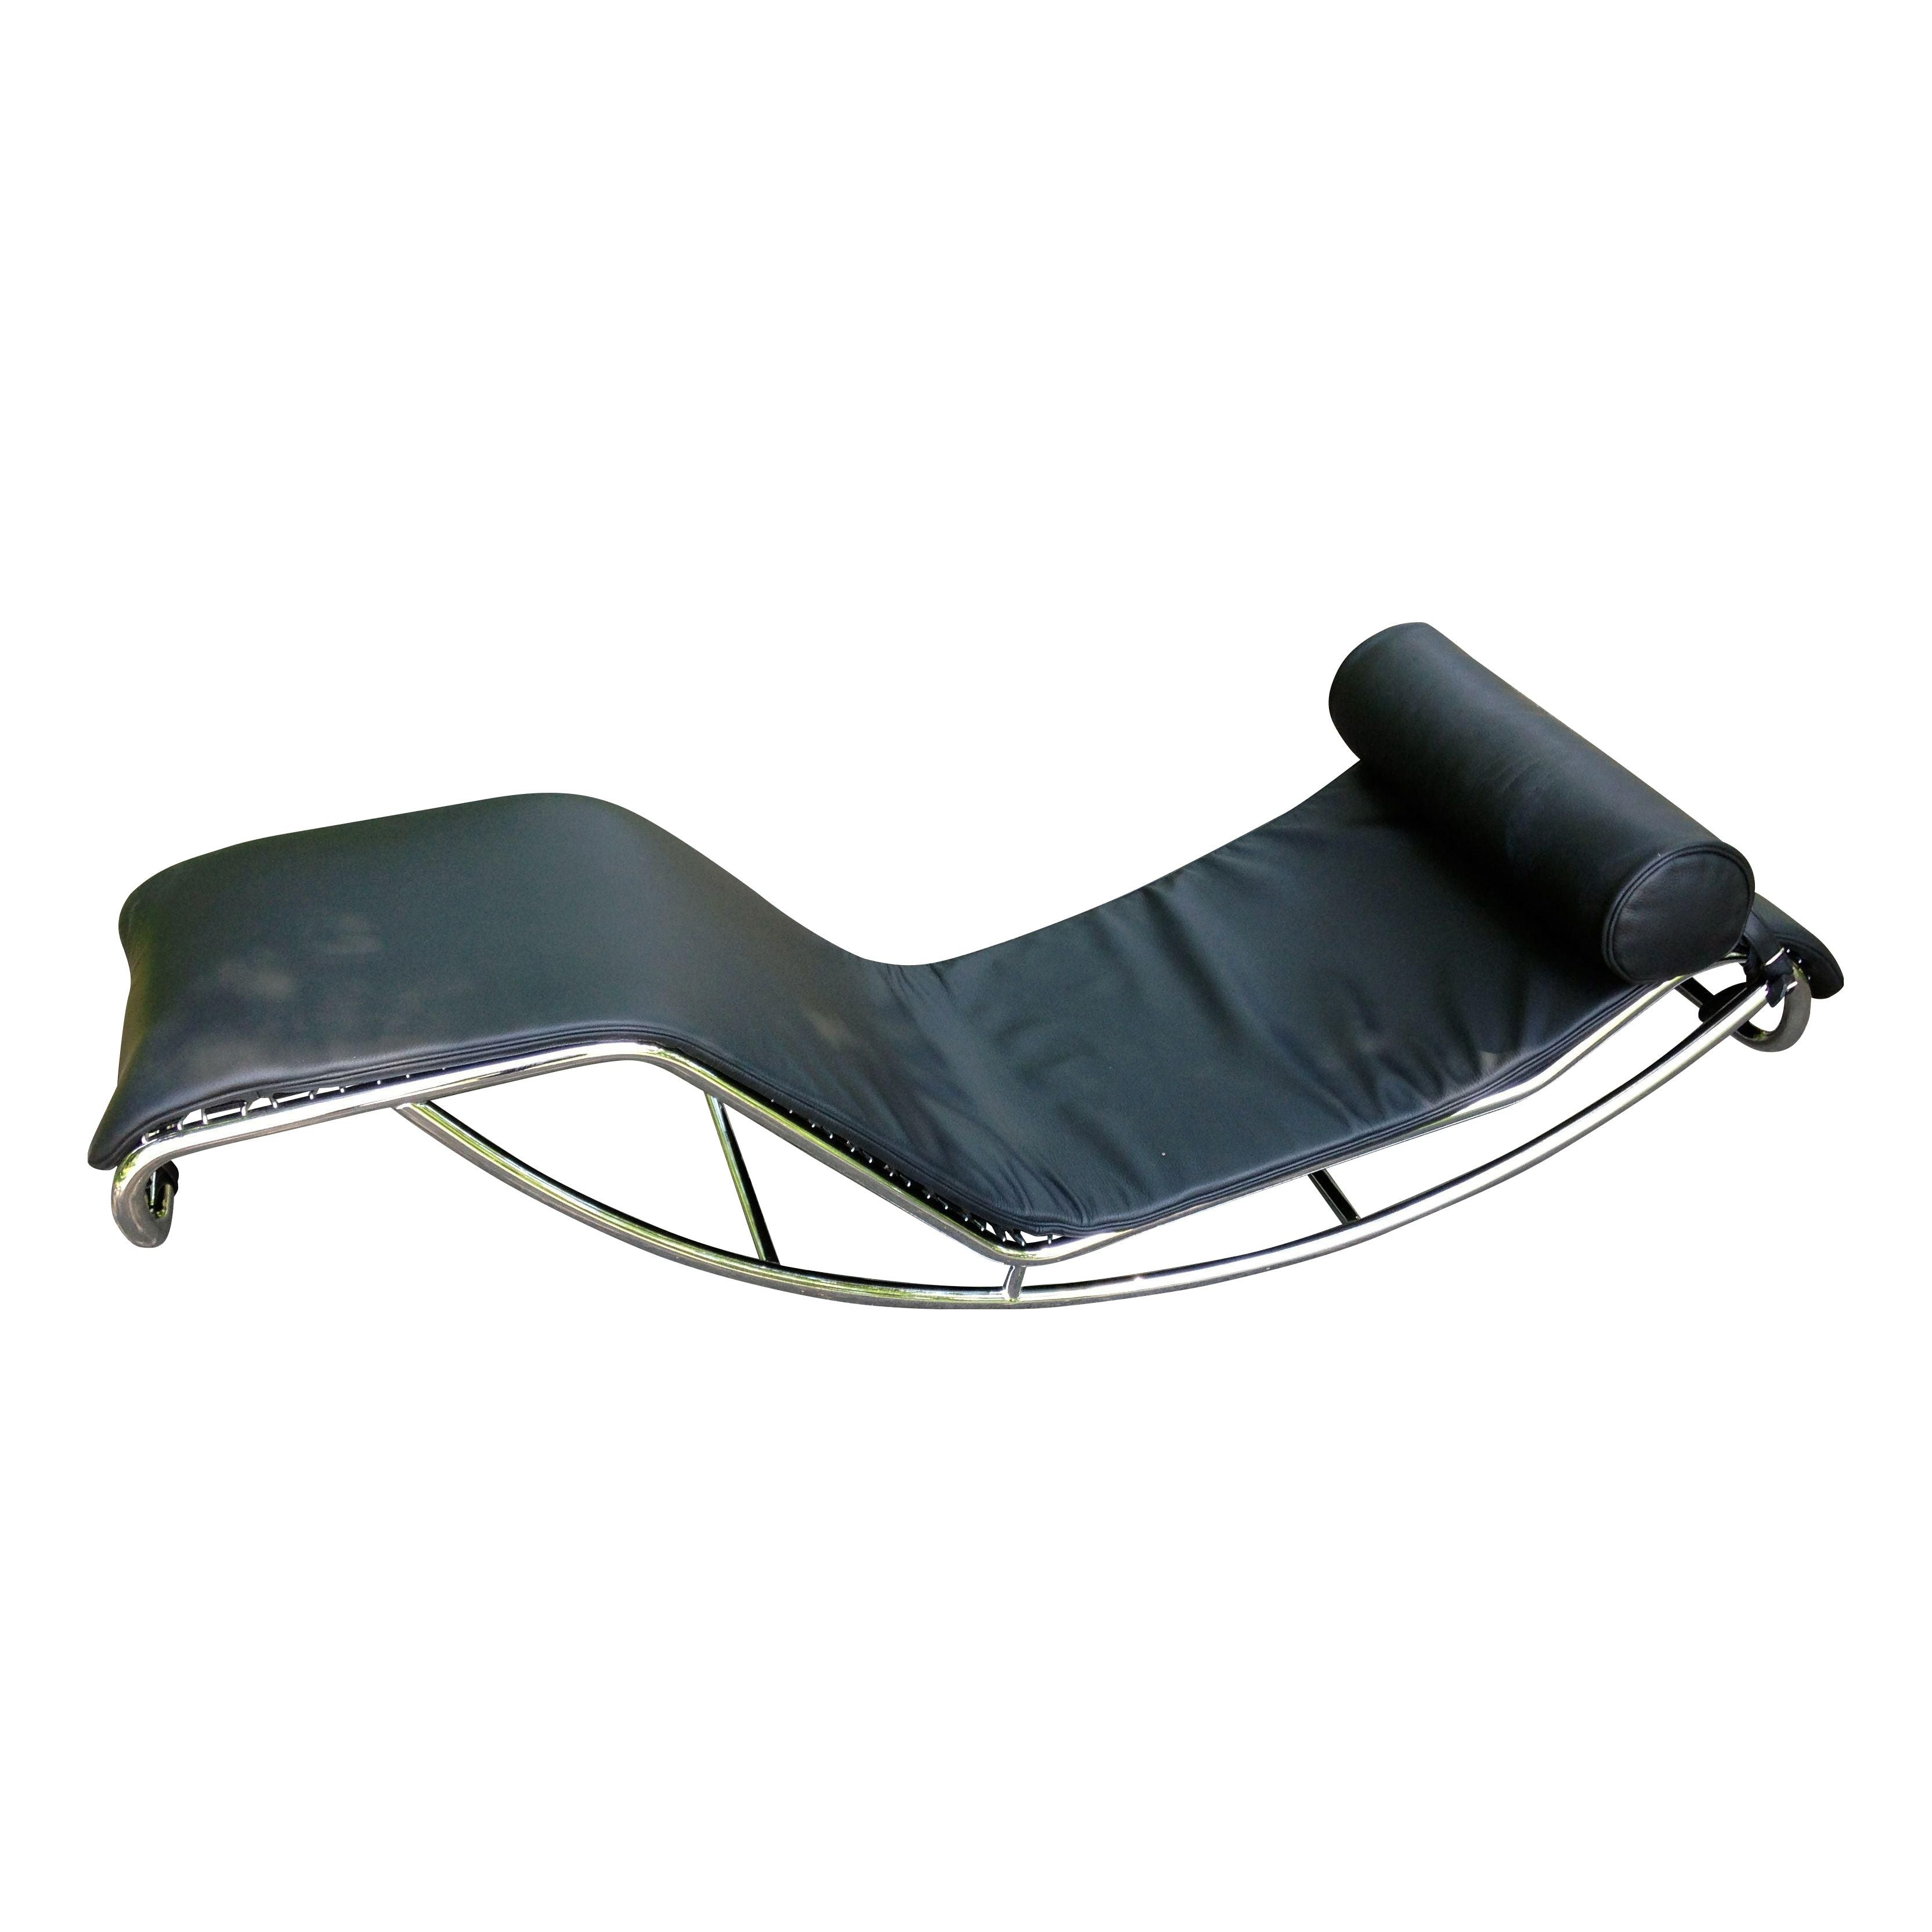 Le corbusier lc4 chaise longue style chair chairish for Chaise longue northern ireland